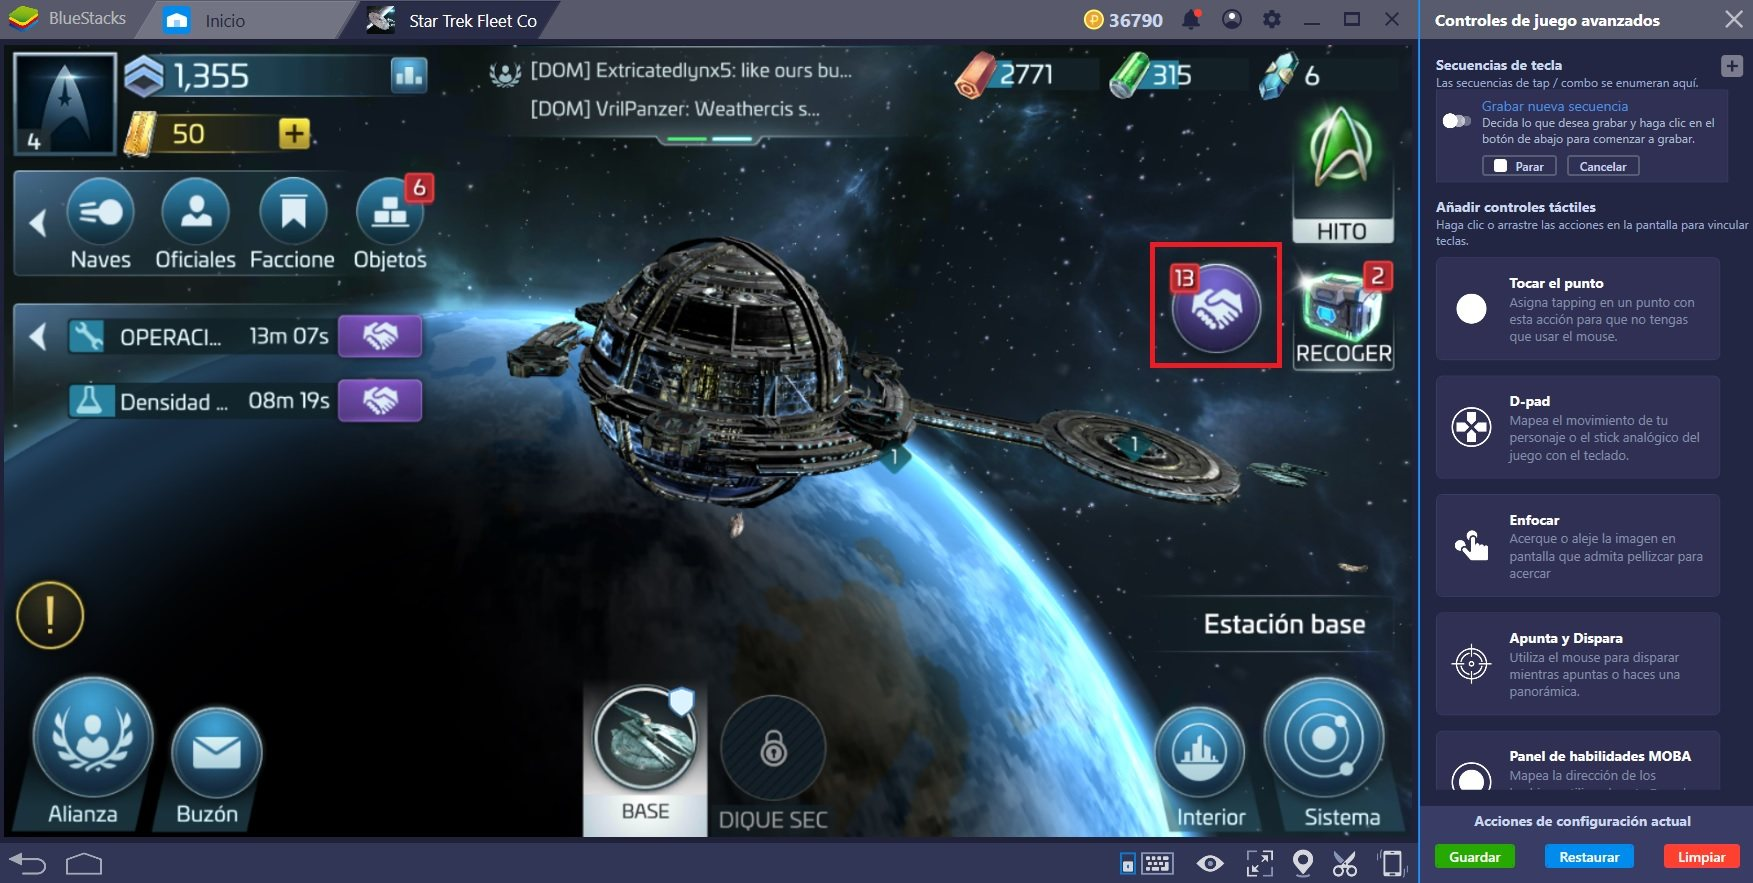 Conquista el Cuadrante en Star Trek Fleet Command con BlueStacks 4